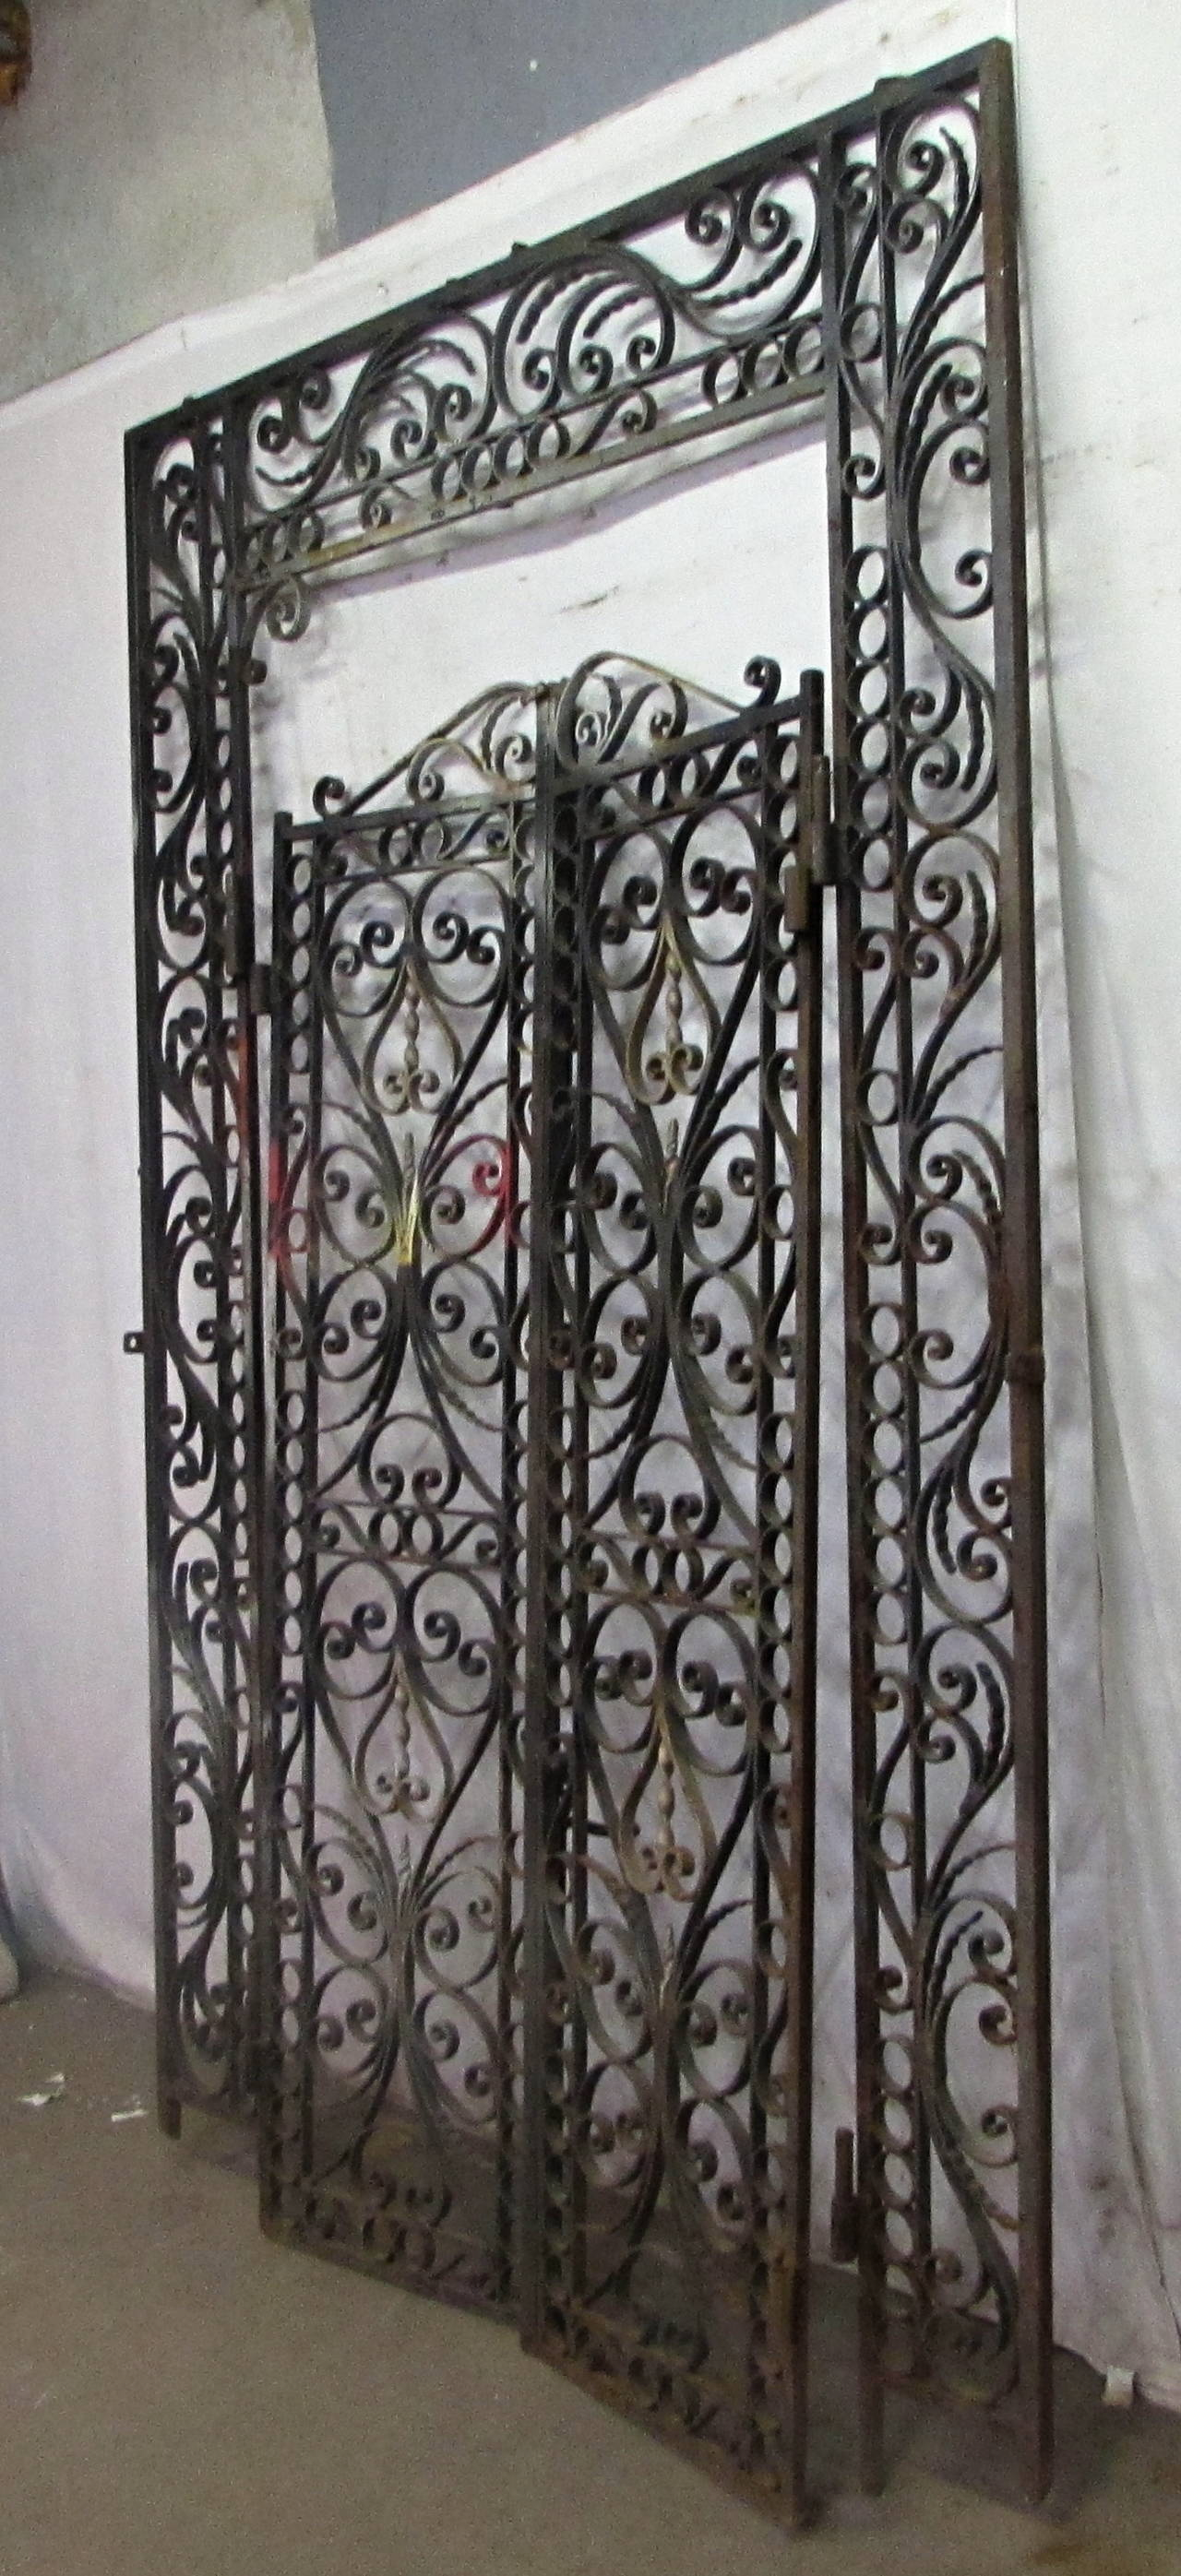 S highly ornate wrought iron entry gates with surround